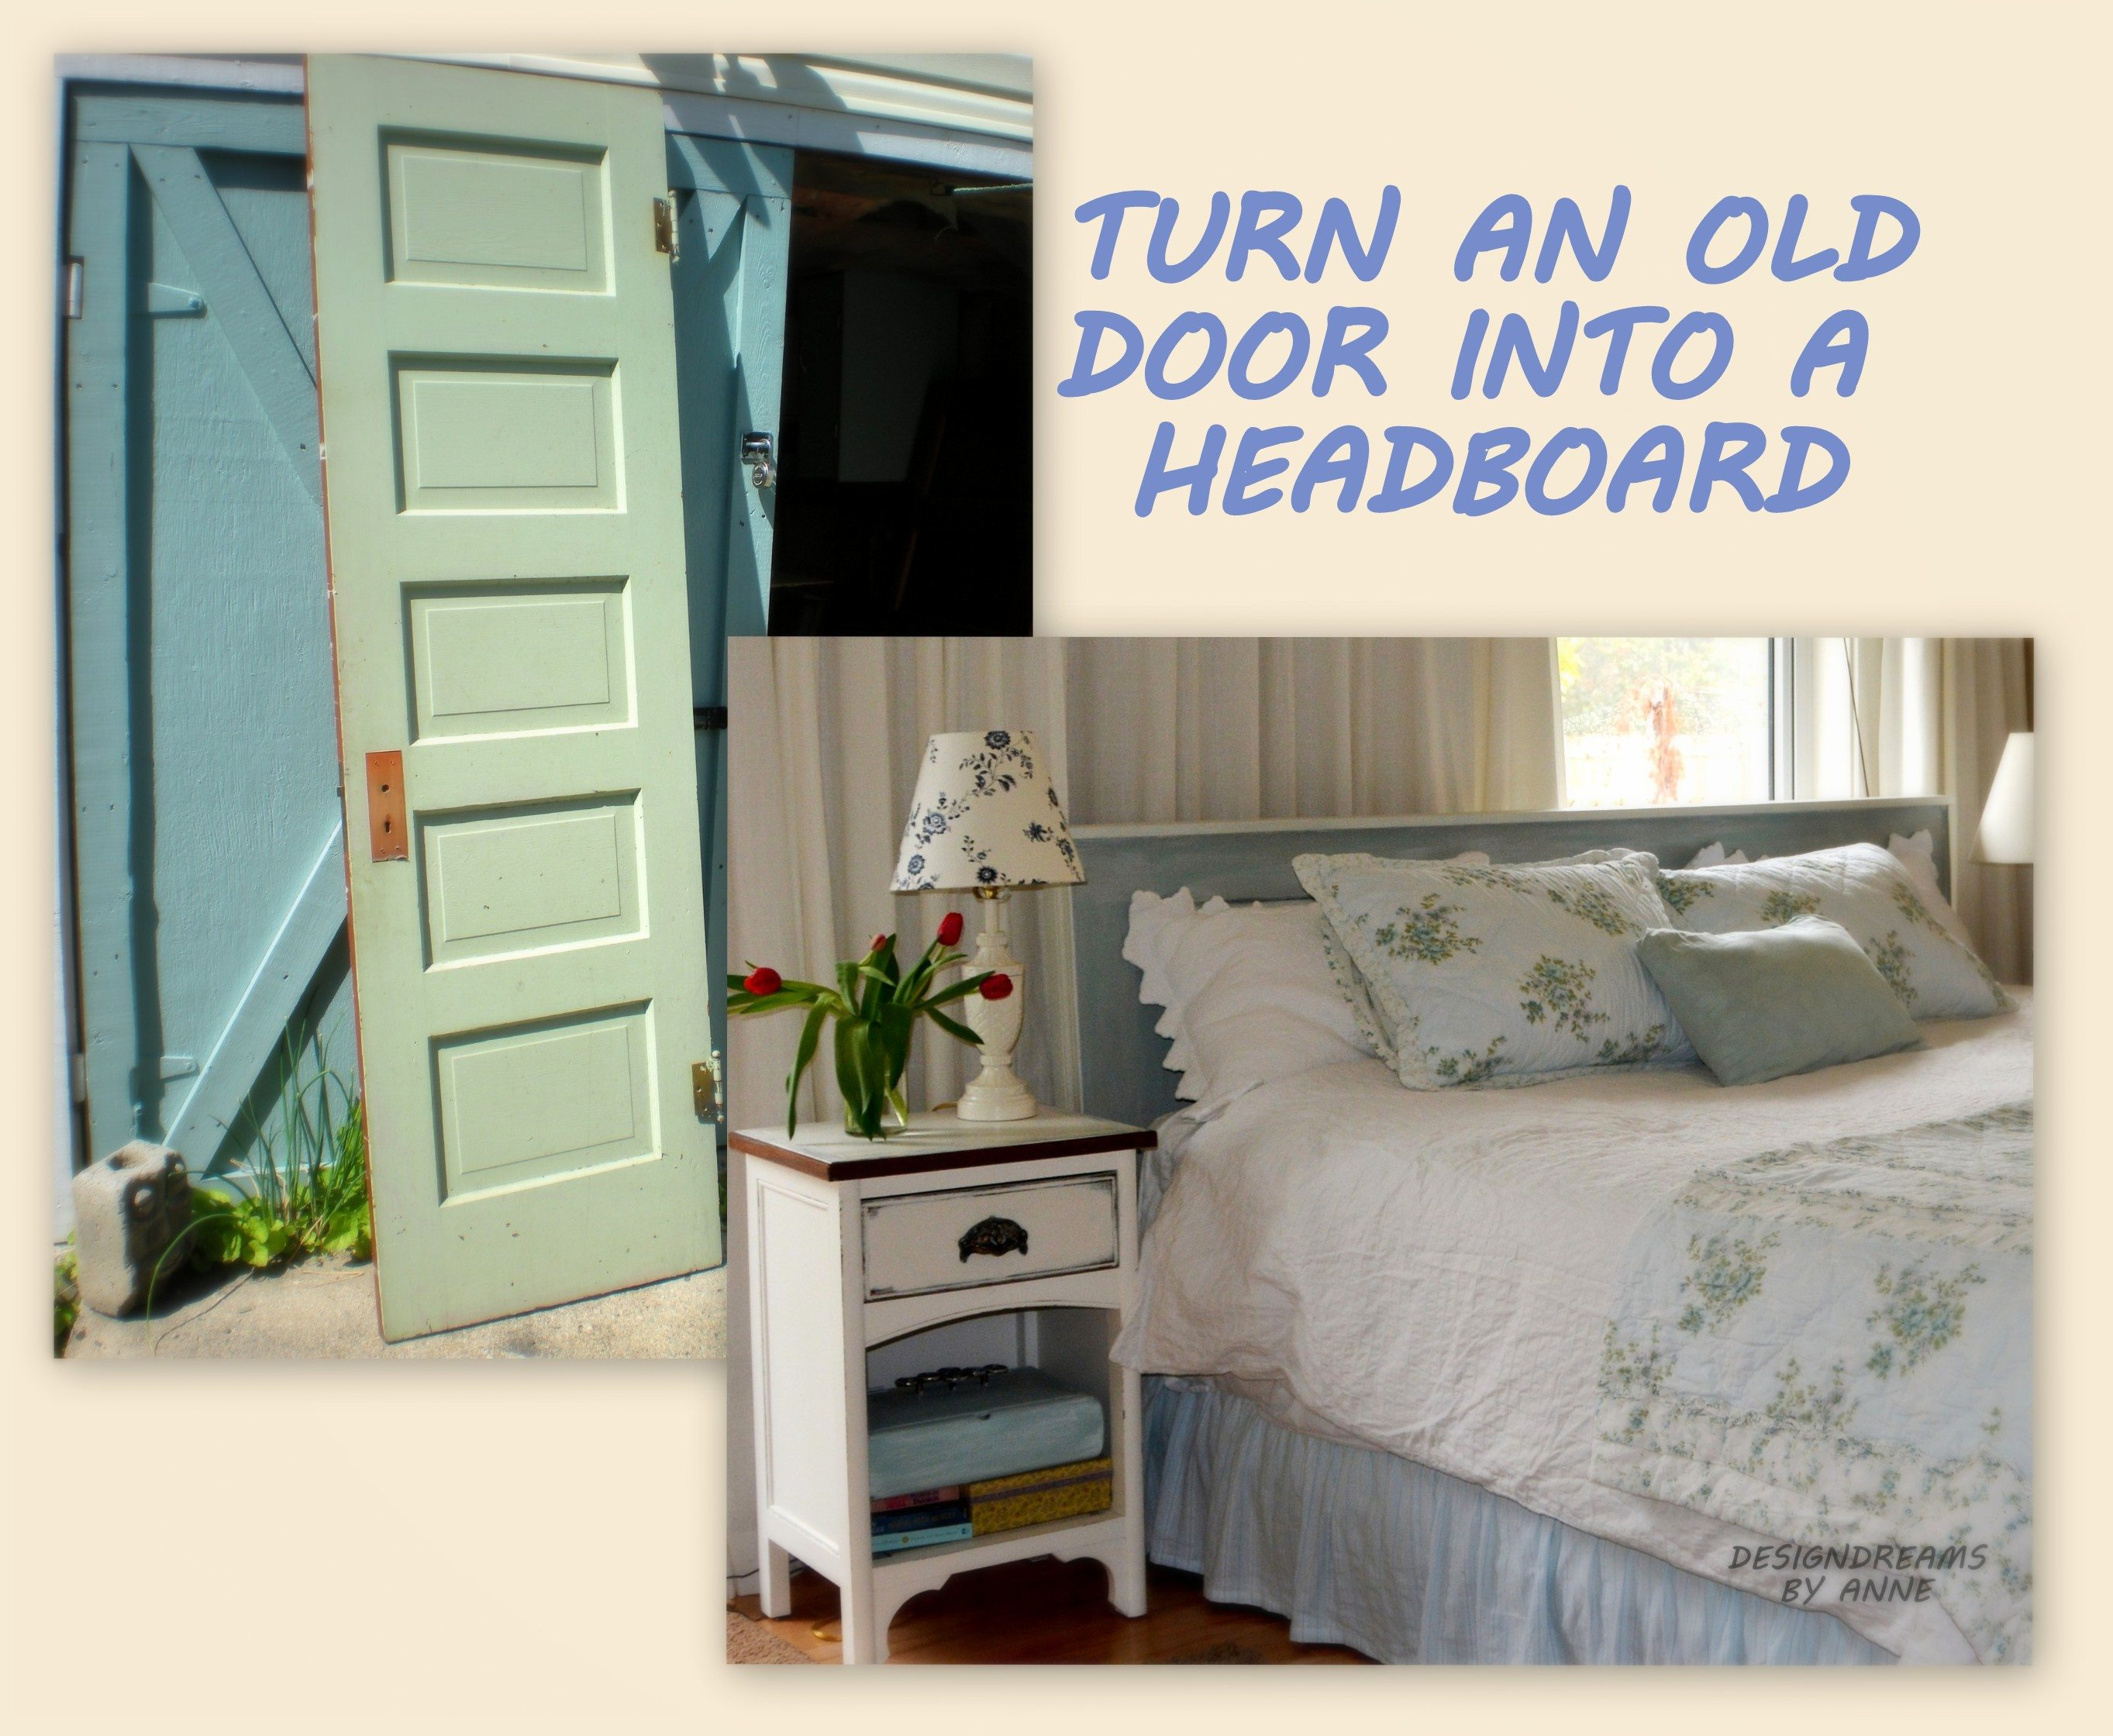 Build a headboard from an old door